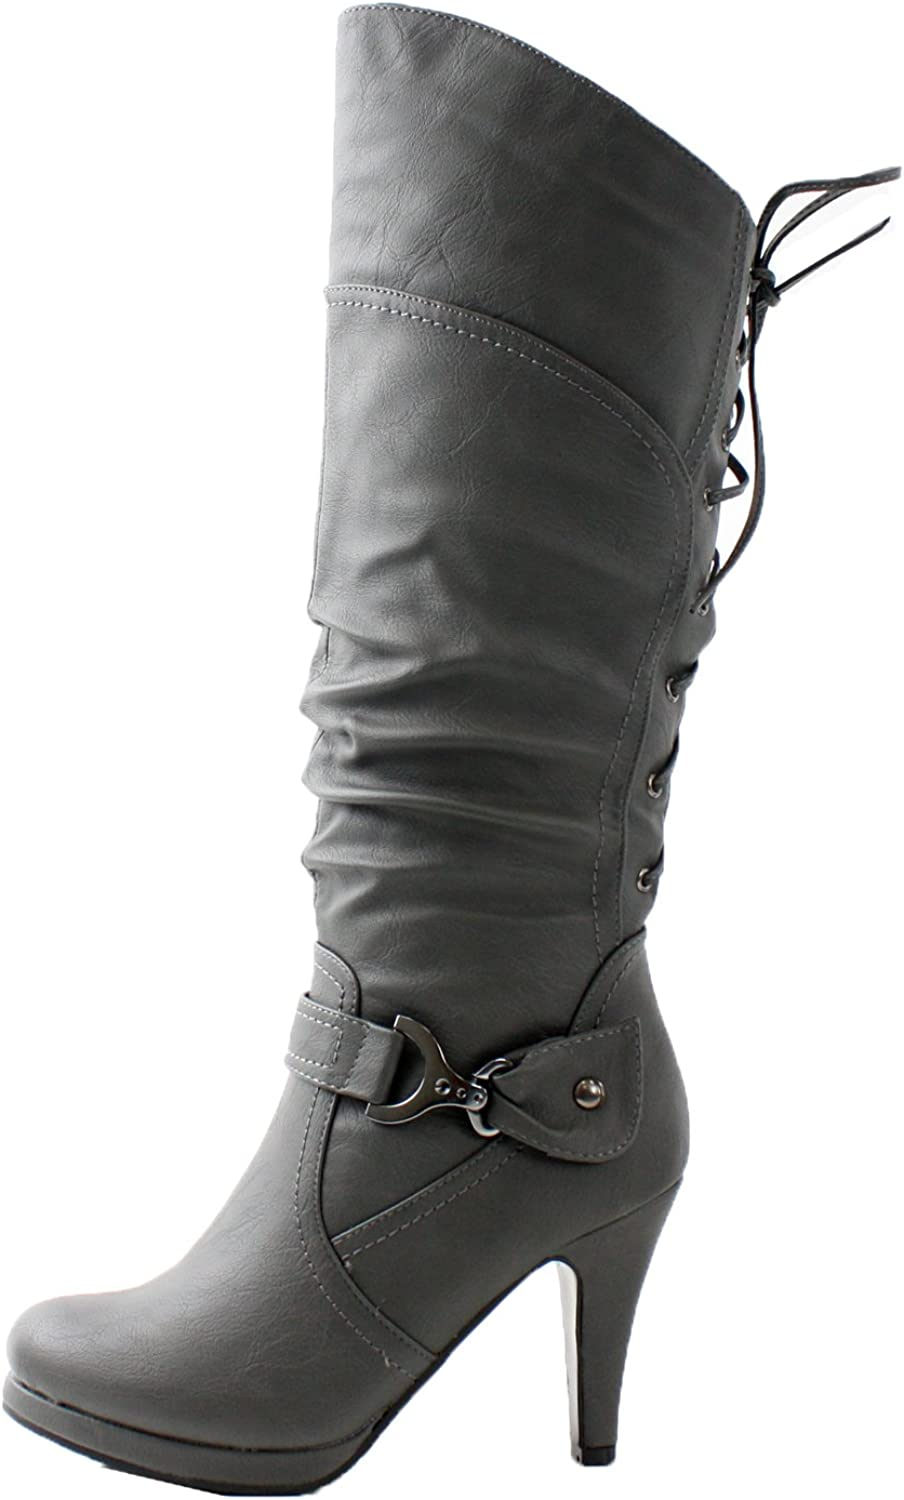 TOP Moda Womens Page-65 Knee High Round Toe Lace-Up Slouched High Heel Boots,Black,5.5